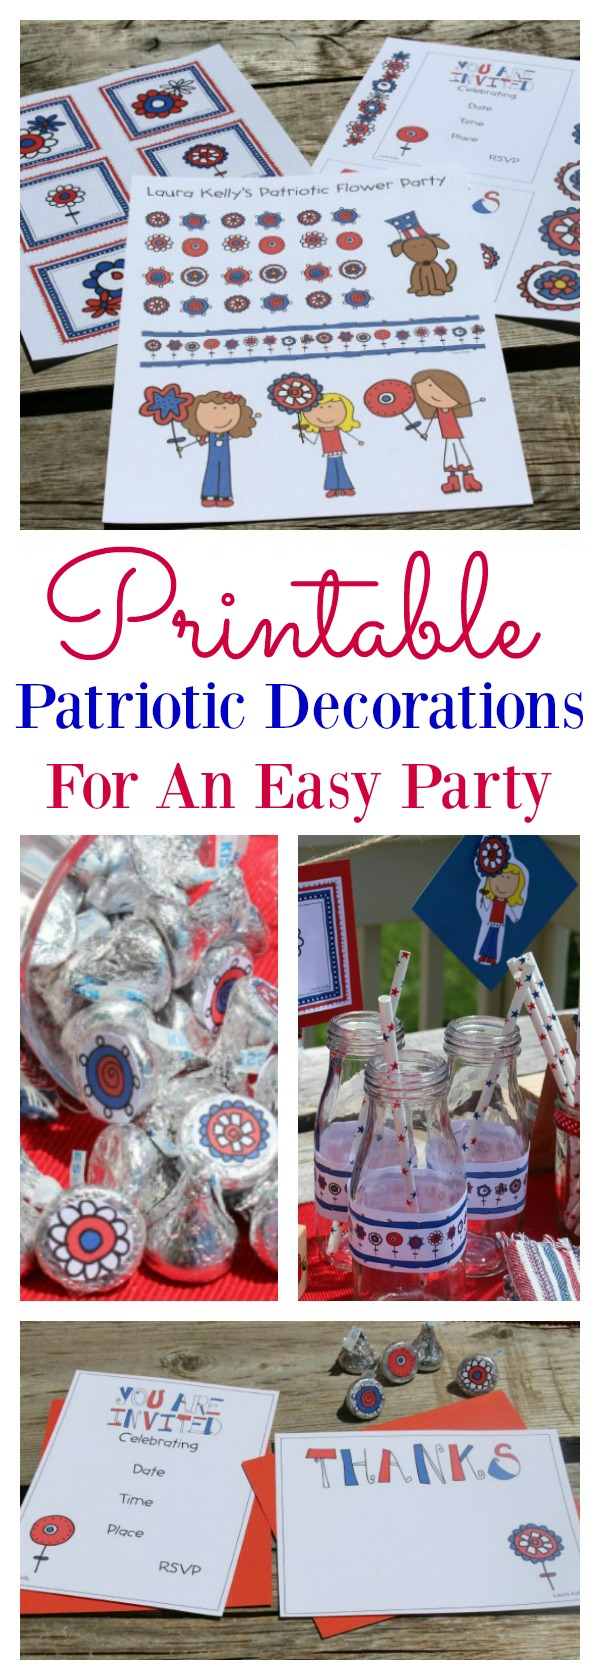 Printable patriotic decorations